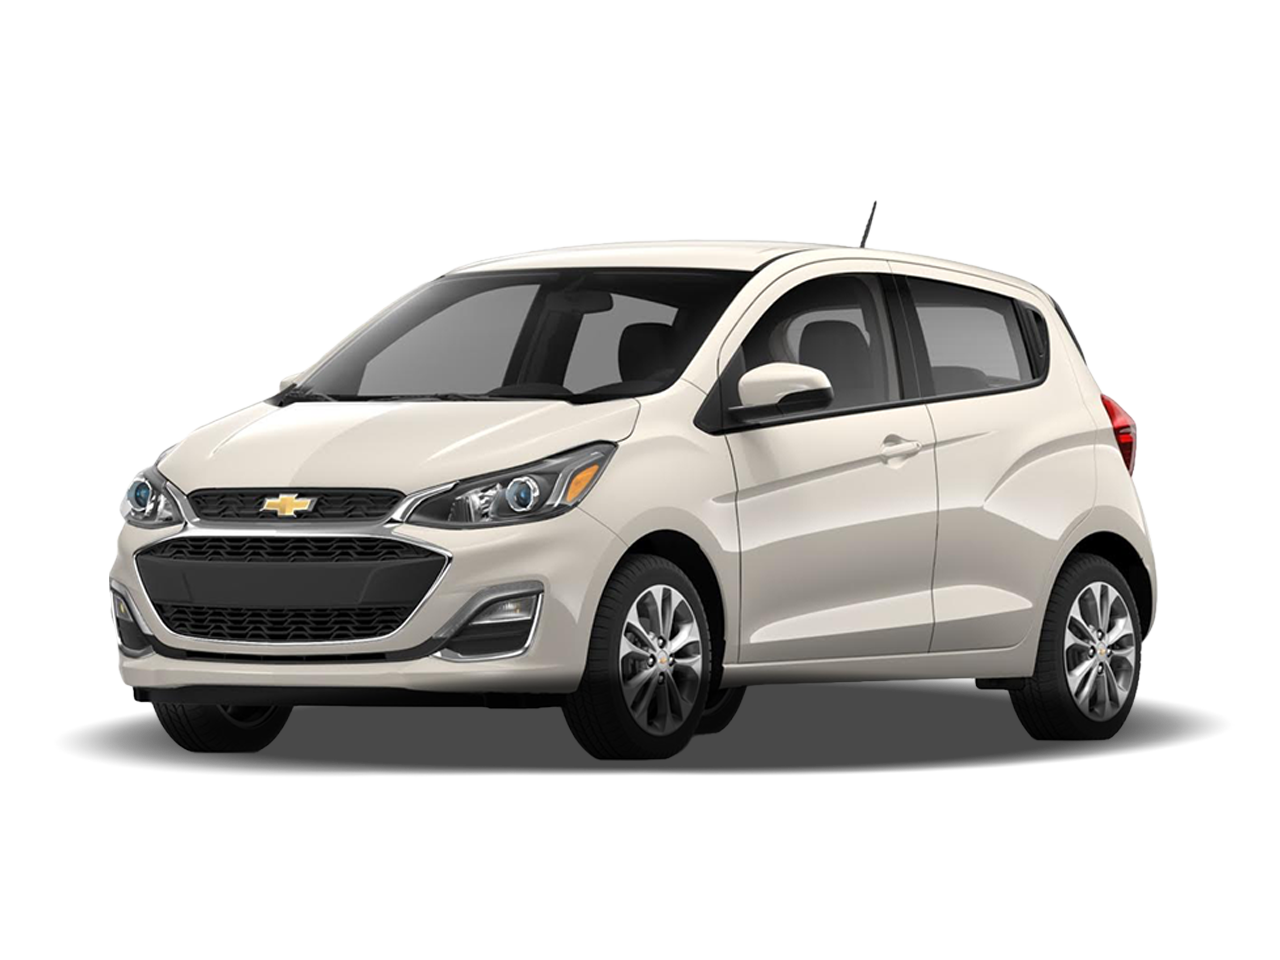 24 New 2019 Chevrolet Spark Price And Review